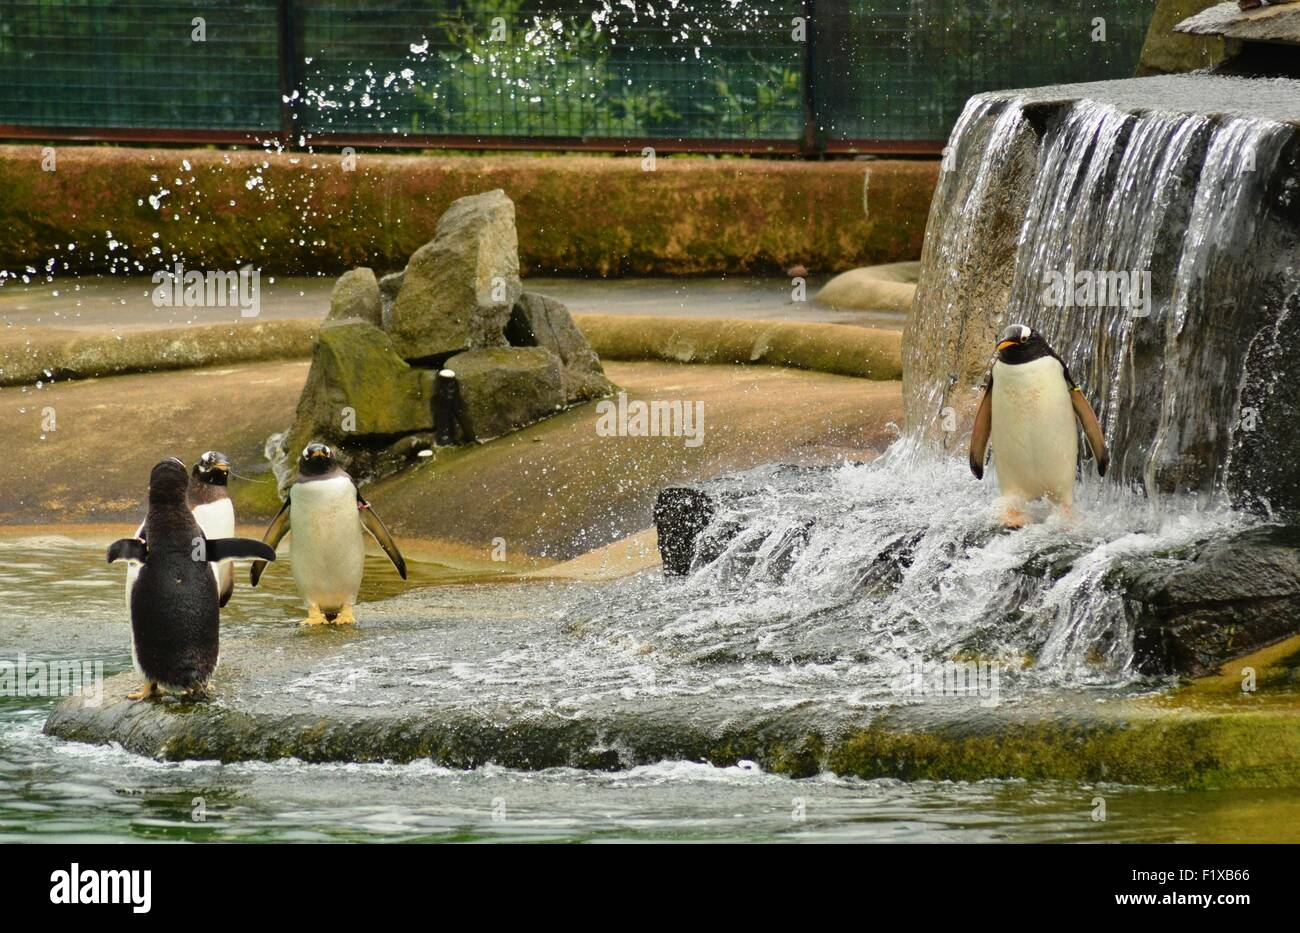 Penguins play in the water - Stock Image